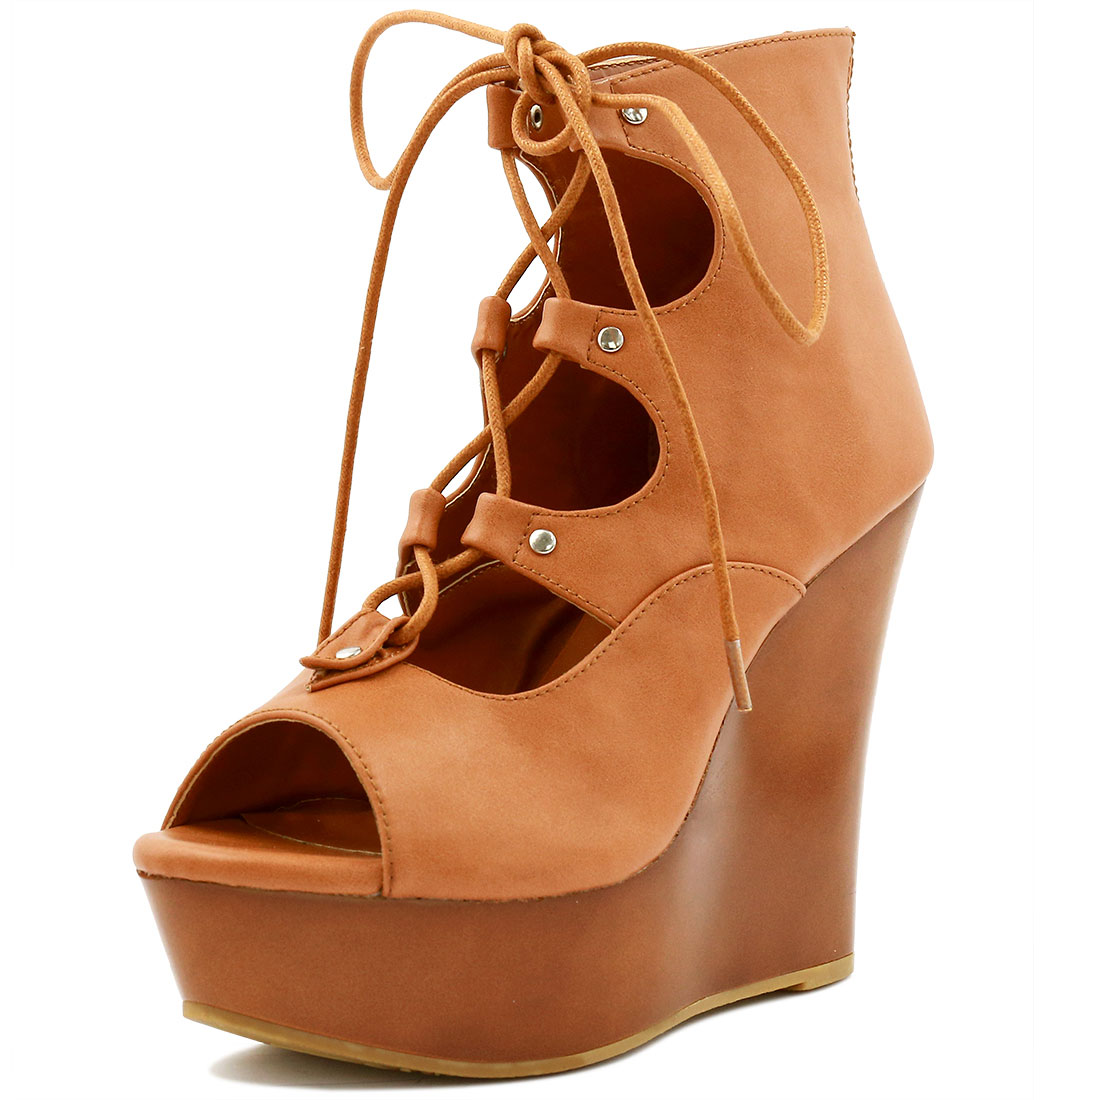 Woman Peep Toe Lace-Up Cutout Platform Wedge Sandals Brown US 11